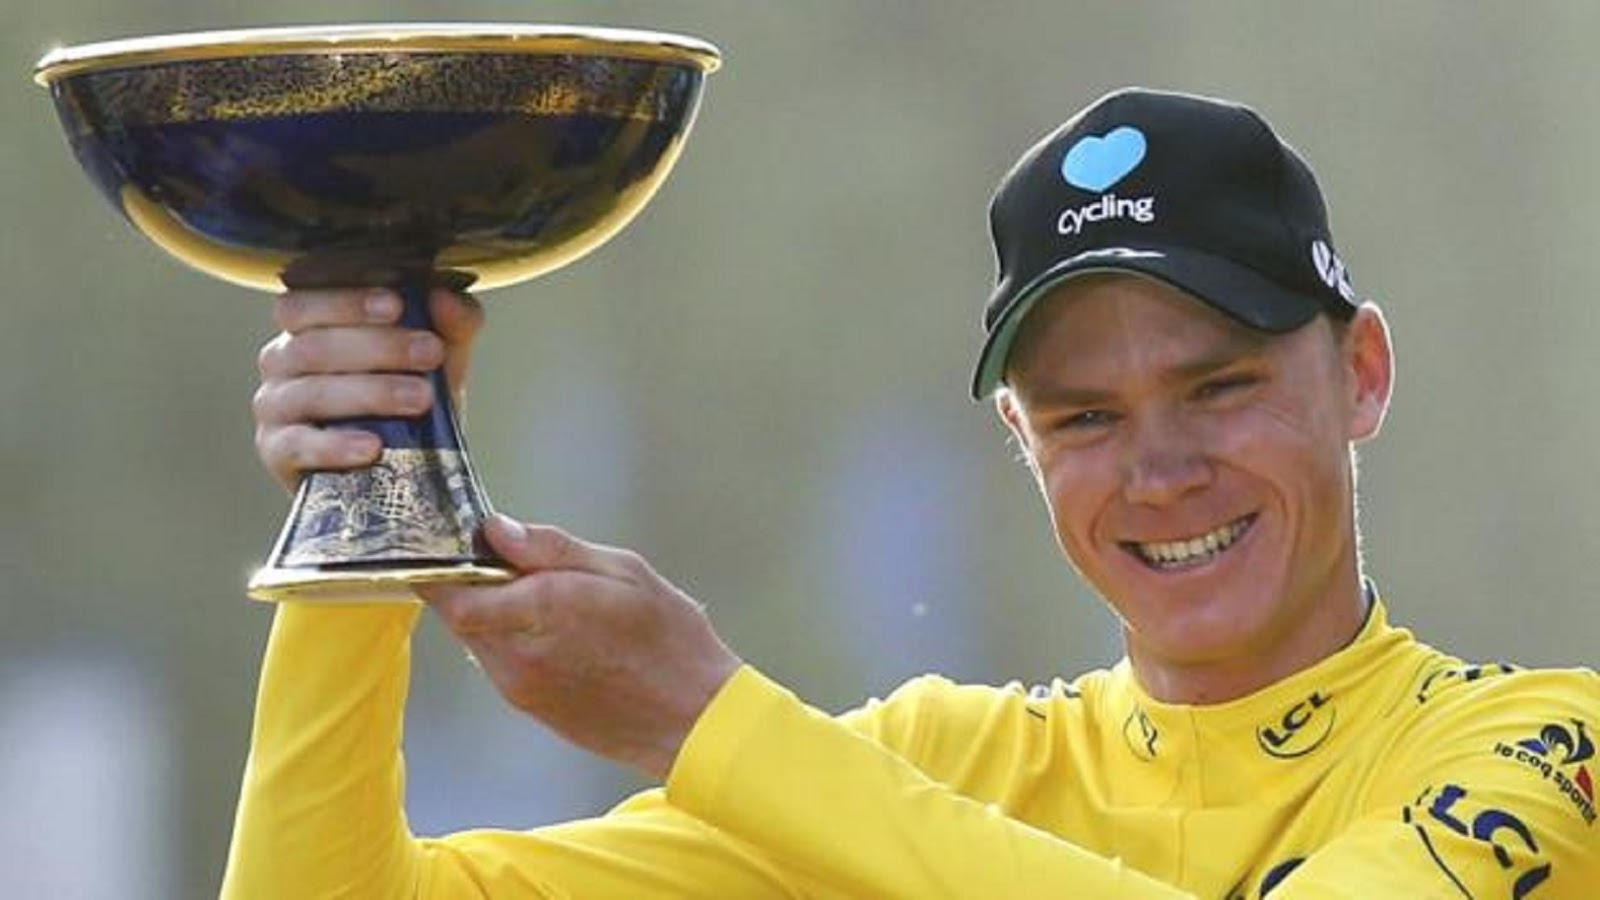 CHRIS FROOME B